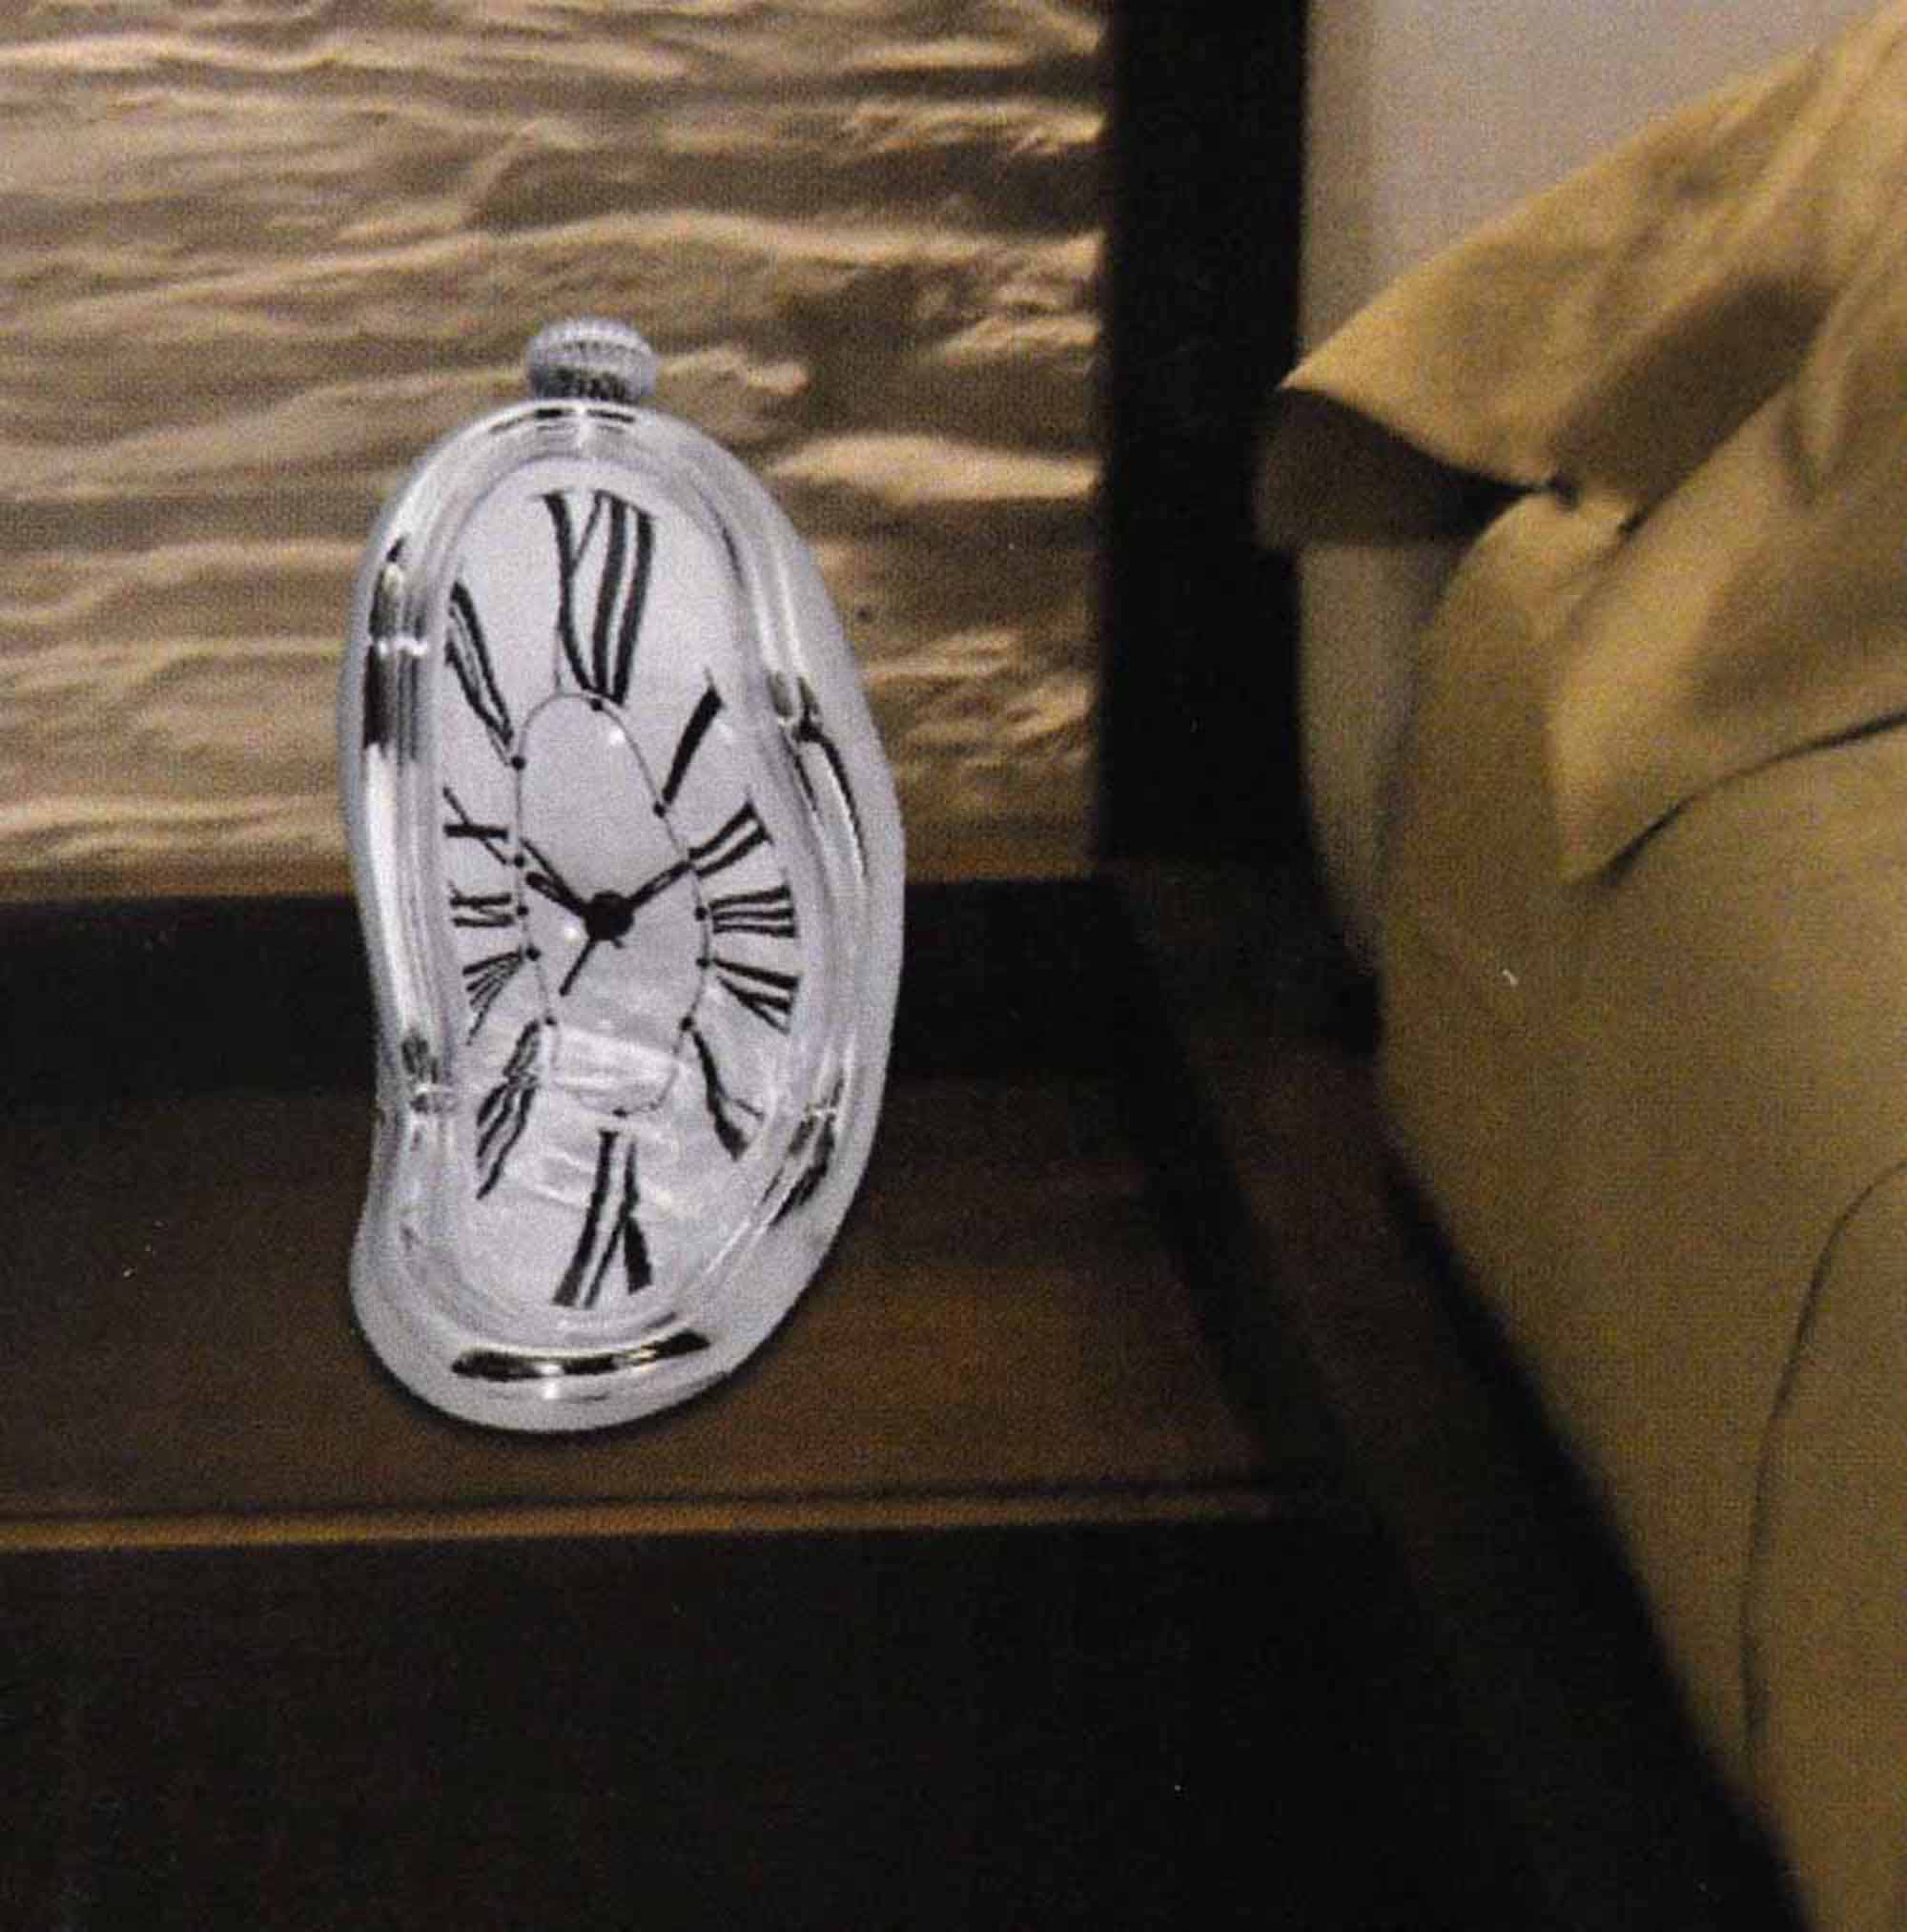 Psychedelic Fun With Garden >> Dali Melting Bedside Alarm Clock - Surrealist Psychedelic Décor | Pink Cat Shop